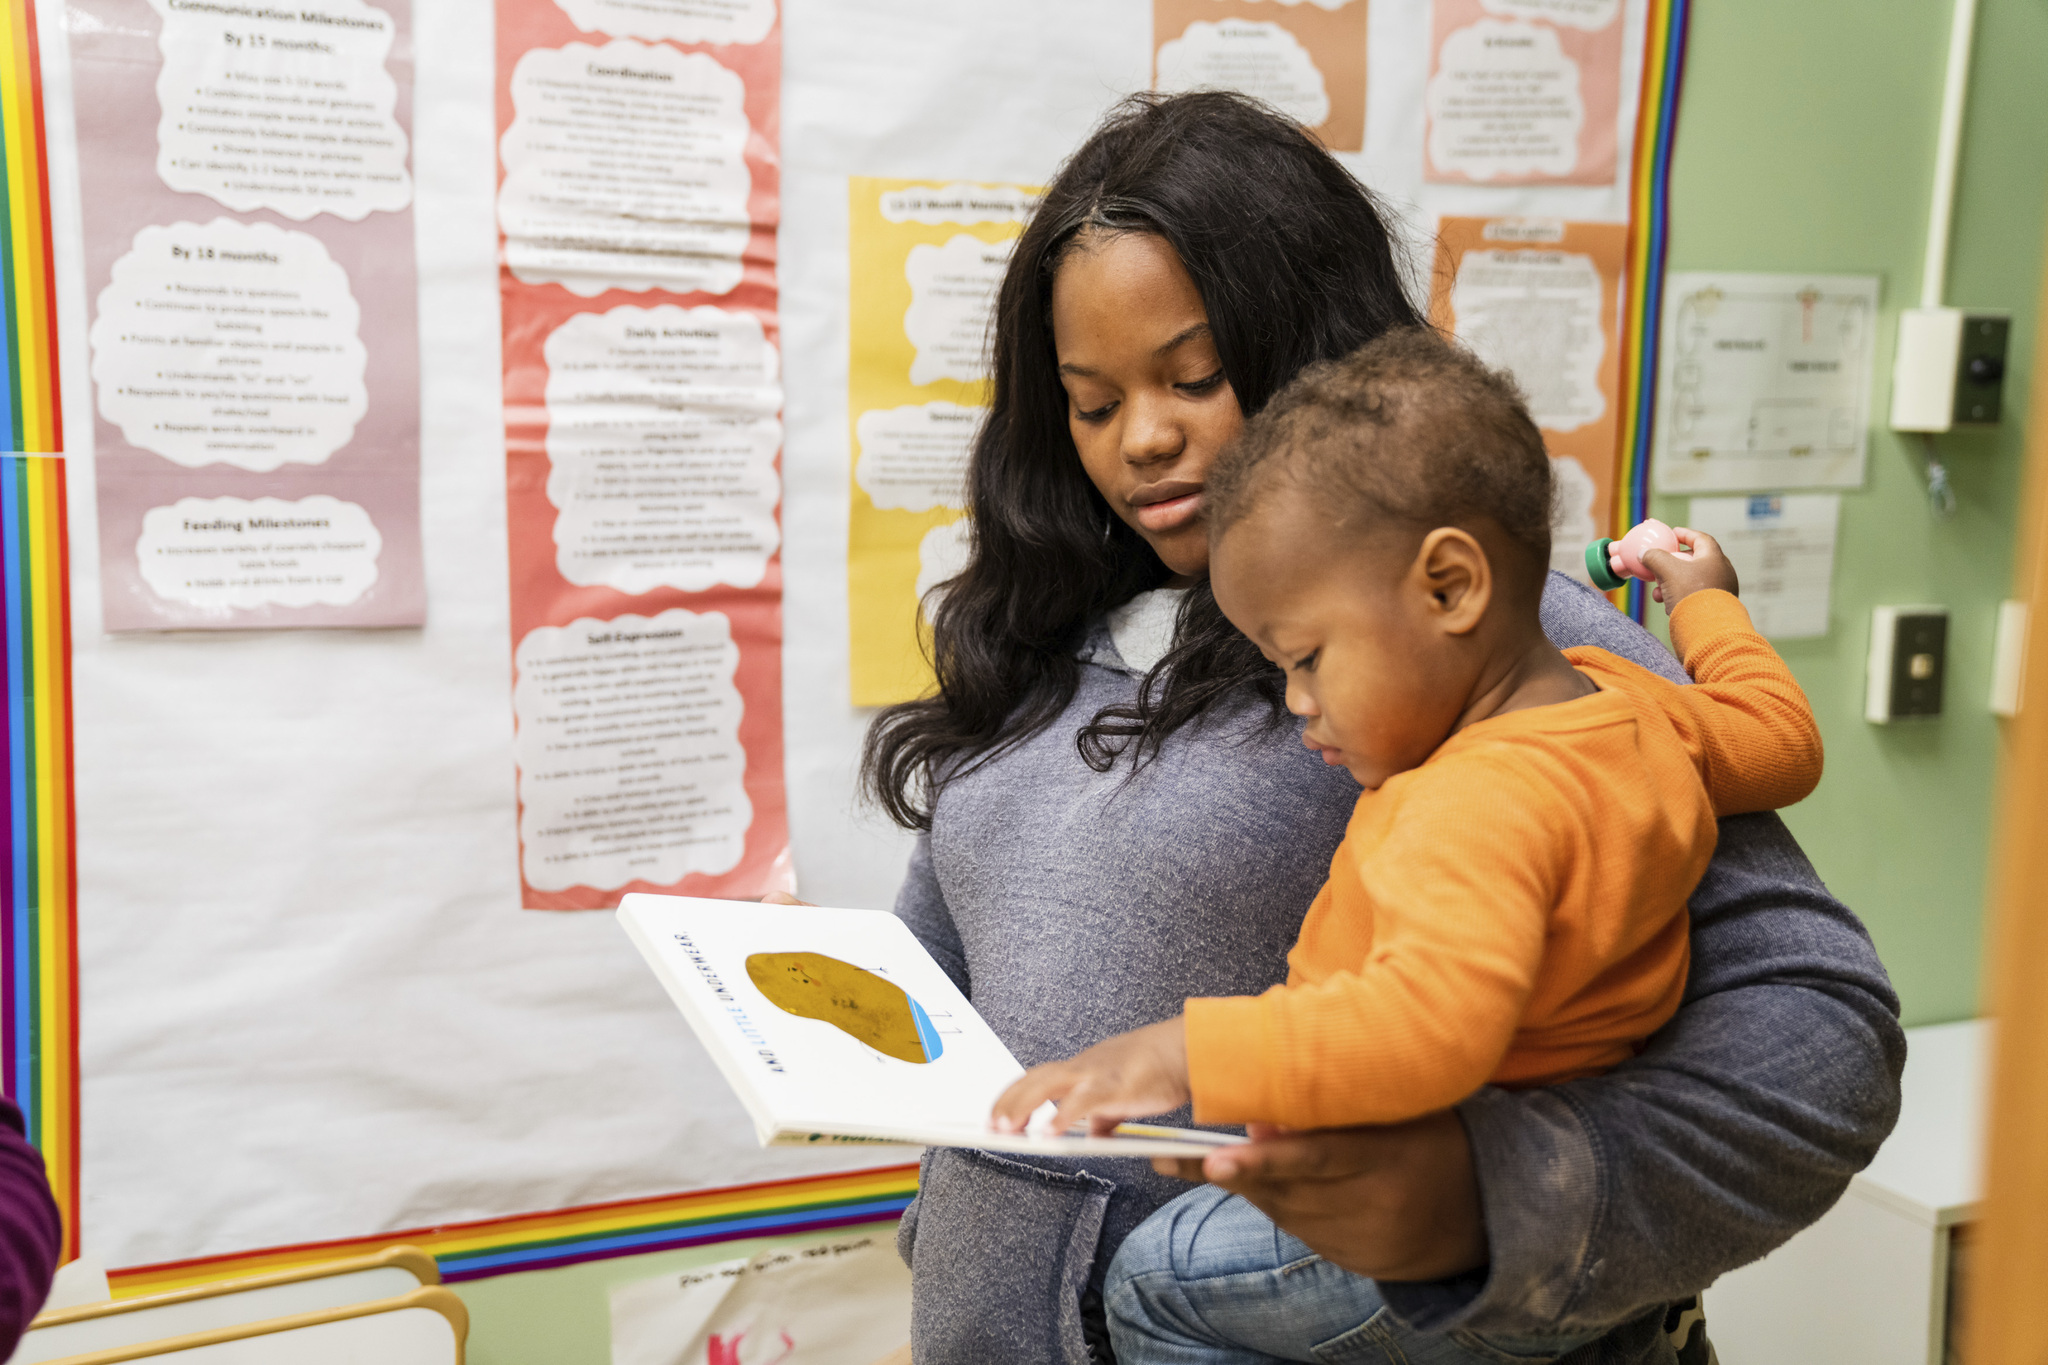 UWCM Columbia Childcare Photo of a mother with her toddler reading a book